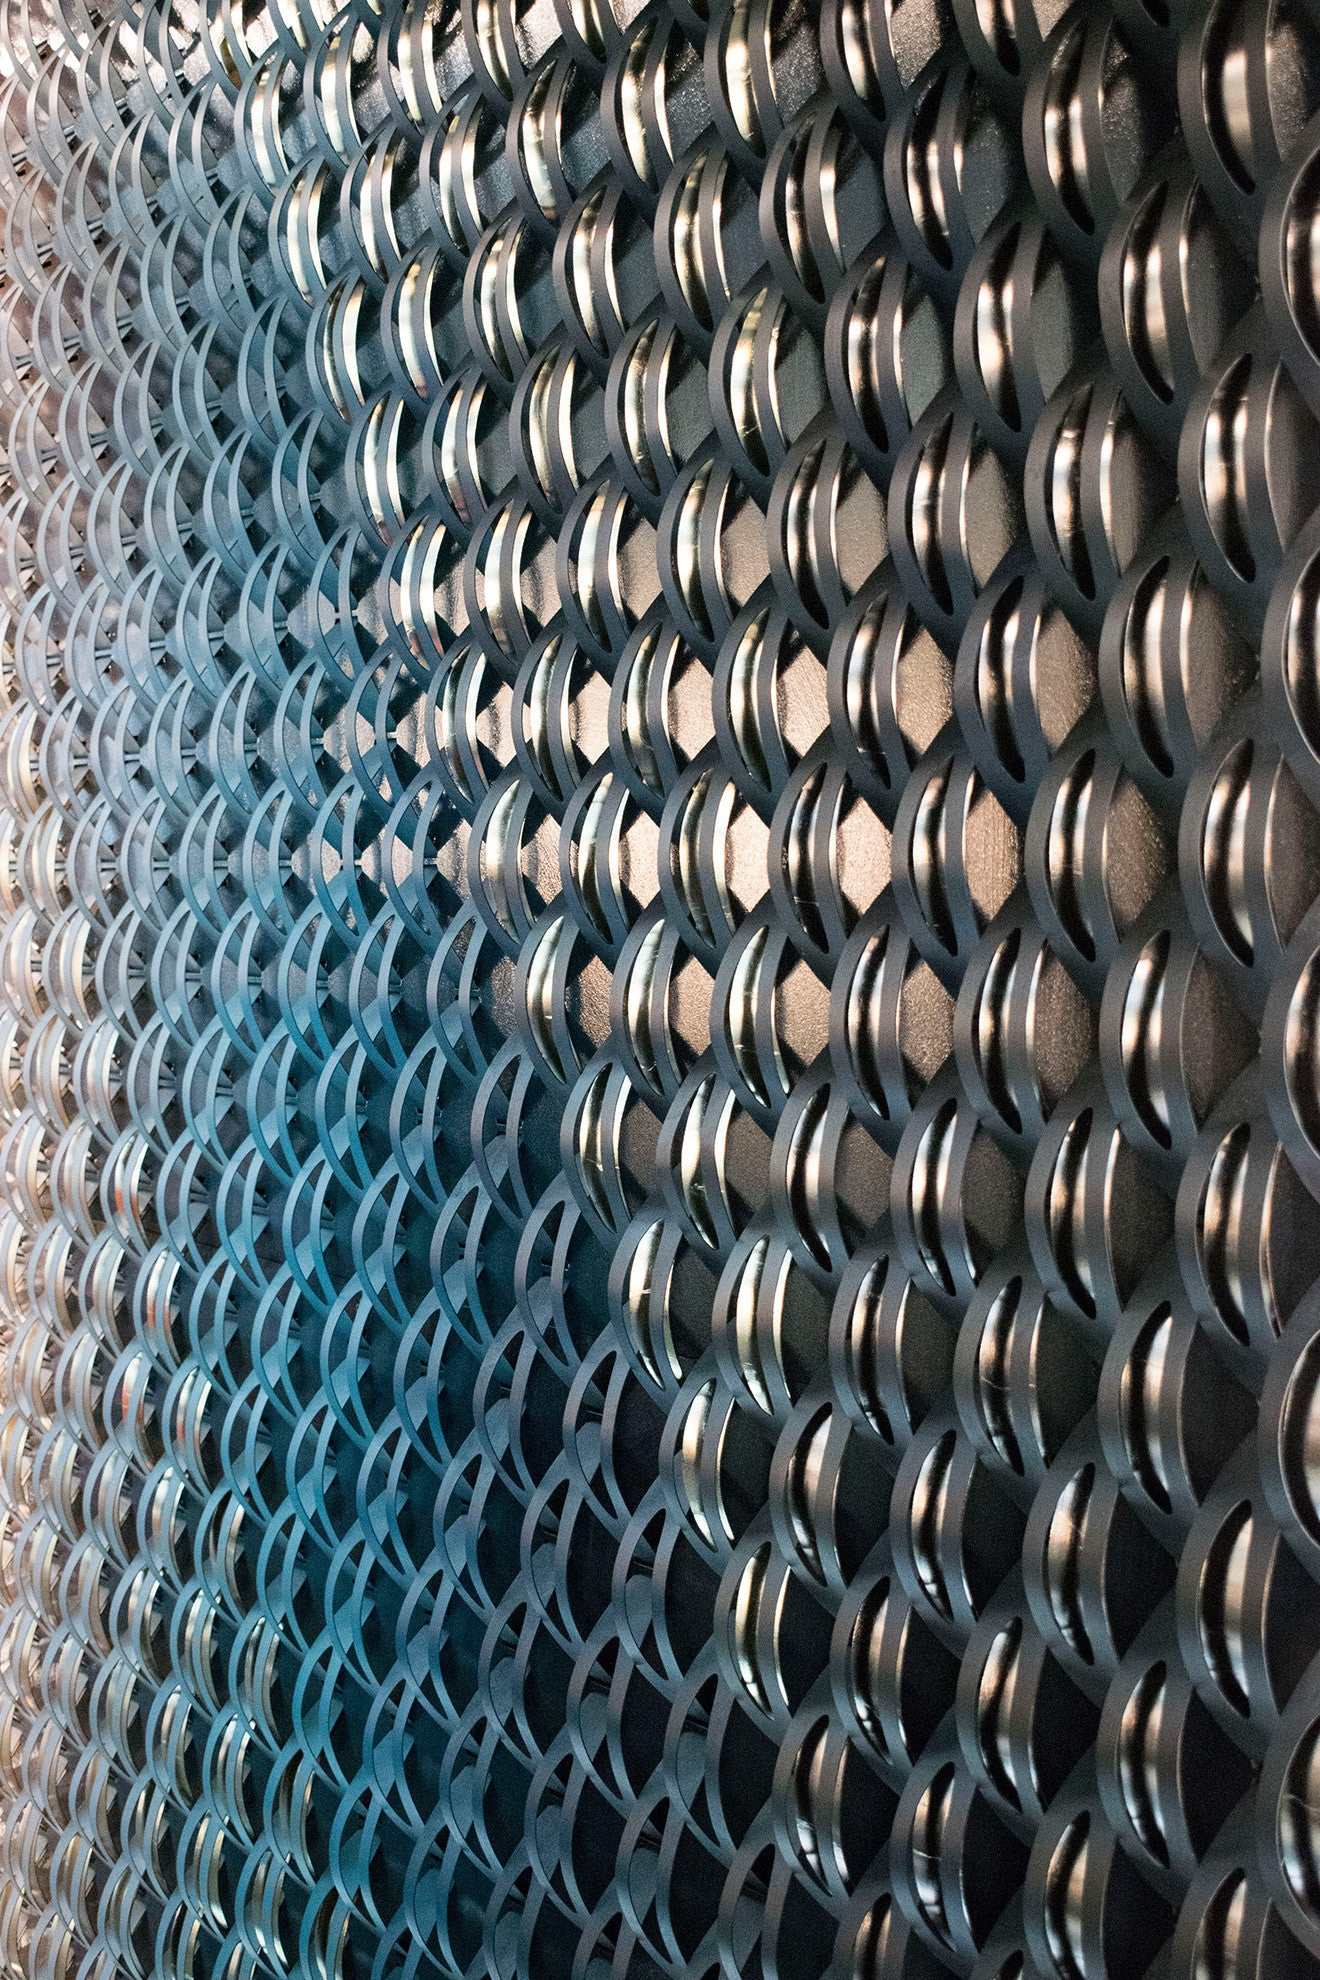 Modern futuristic style wall covering from Evan James Design